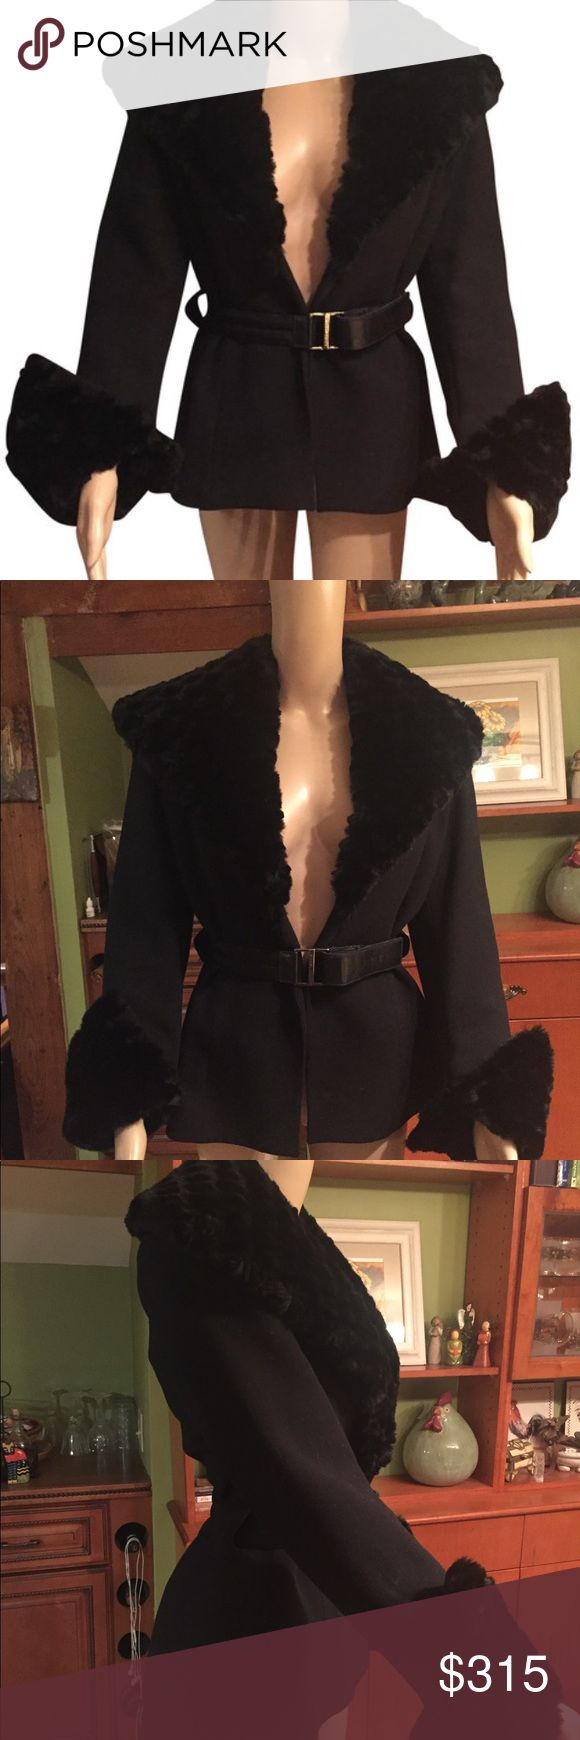 """Felipe Varela Stunning Black Jacket size 38 Brand New! Never worn! Absolutely stunning elegant jacket and extravagant design !! Big gorgeous oversized shawl collar made of high quality faux fur. Office, wedding, funerals !! :) Perfect fit for size 2-8. Paid $1200 Measurements Length 27"""" Sleeves 24"""" Waist 32"""" hem 38"""" Jackets & Coats Blazers"""